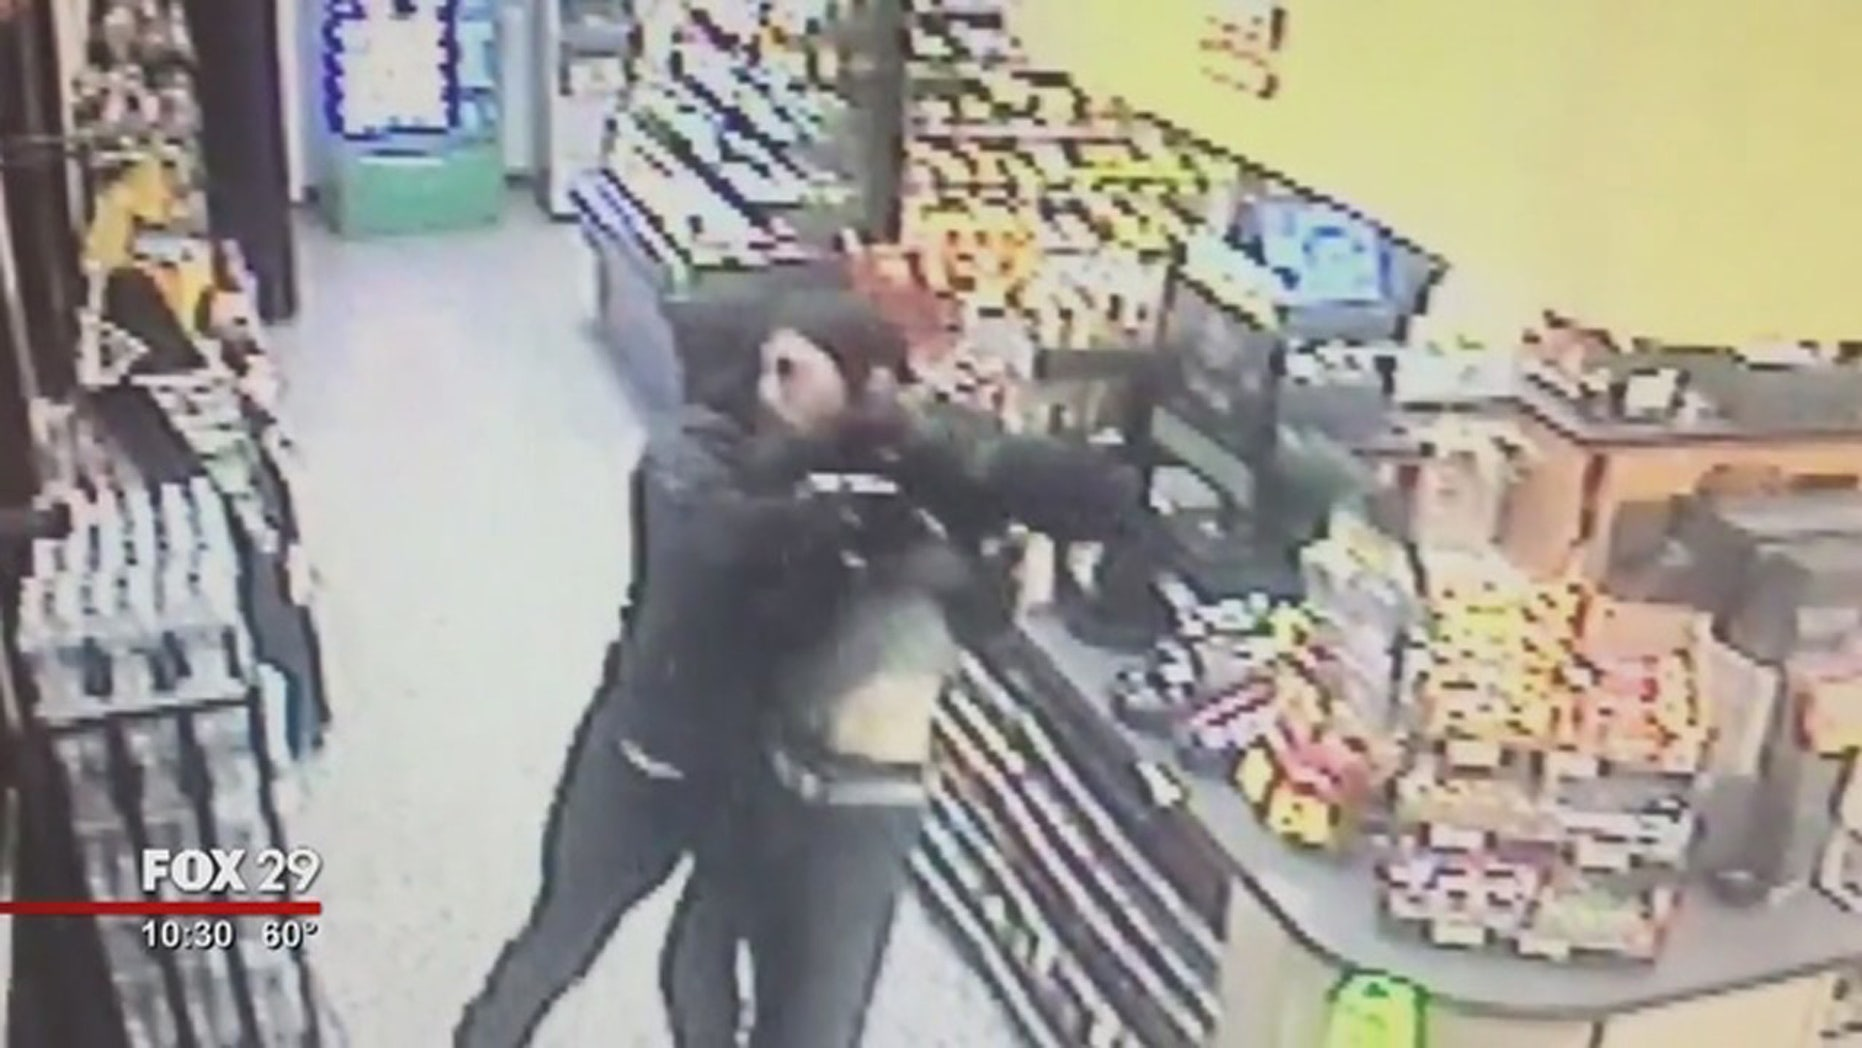 A Good Samaritan was captured via surveillance video fighting an armed man who police say robbed a Wawa store.